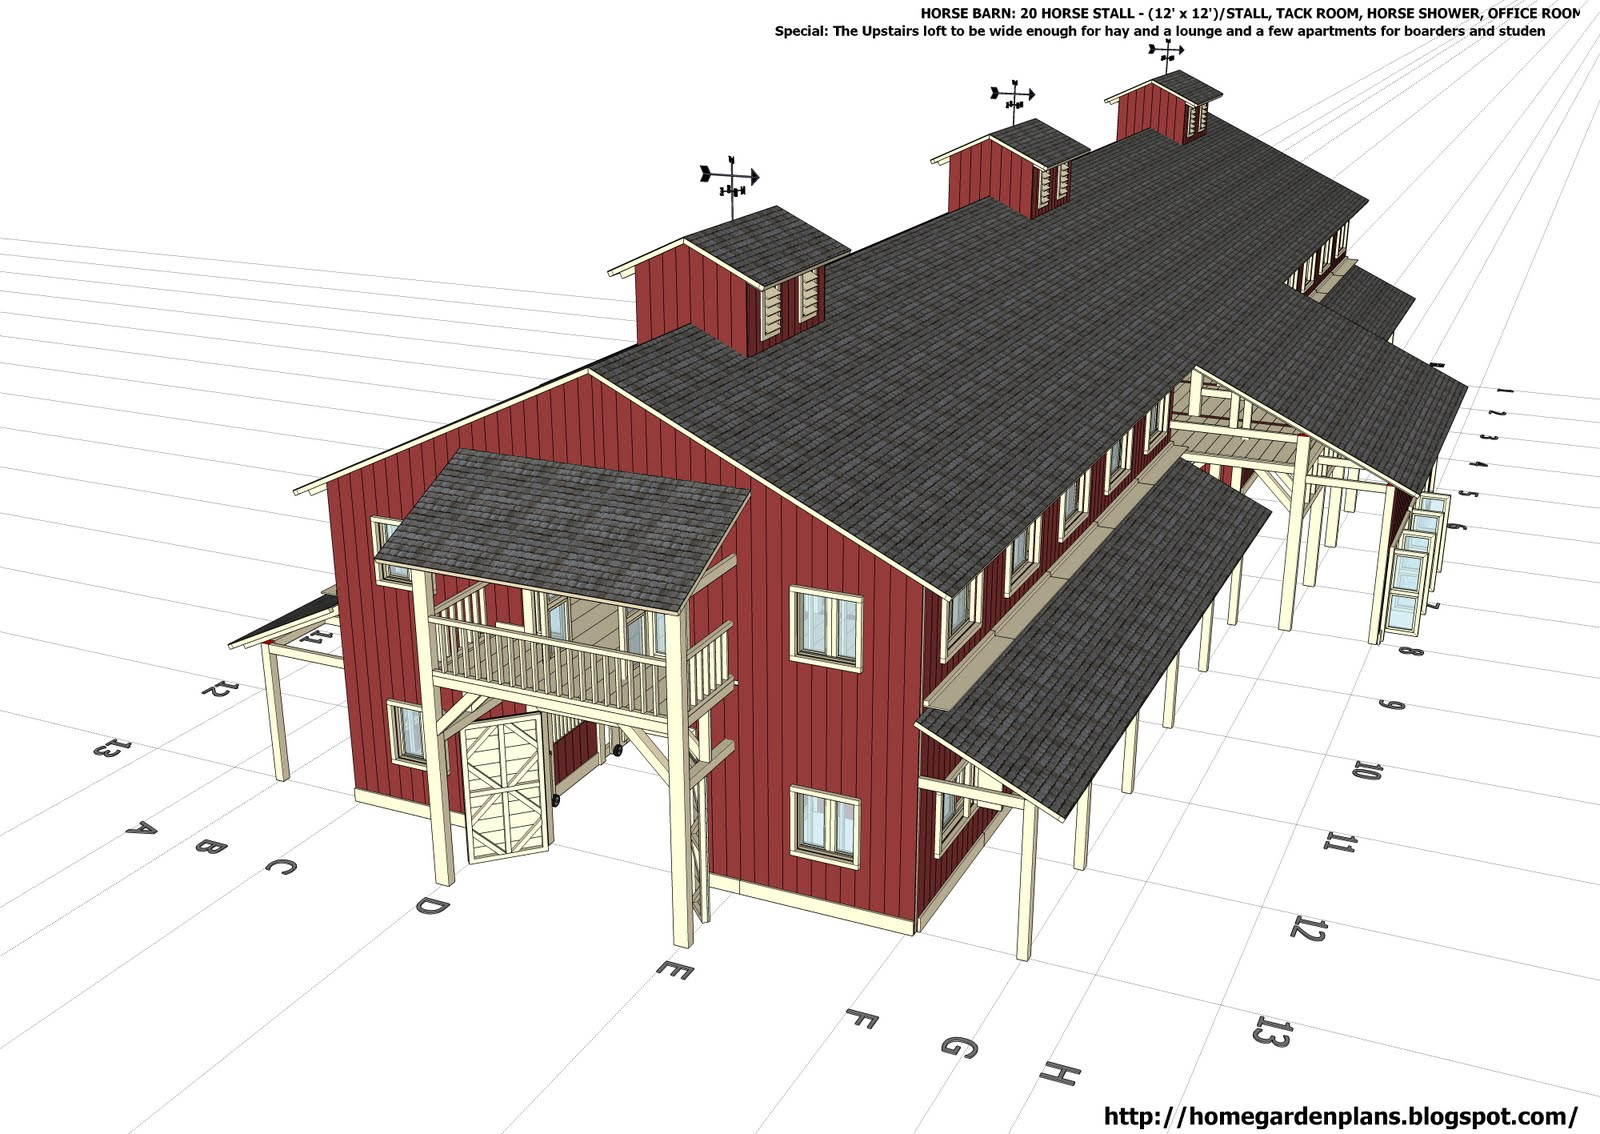 Home garden plans h20b1 20 stall horse barn plans for Barn layouts